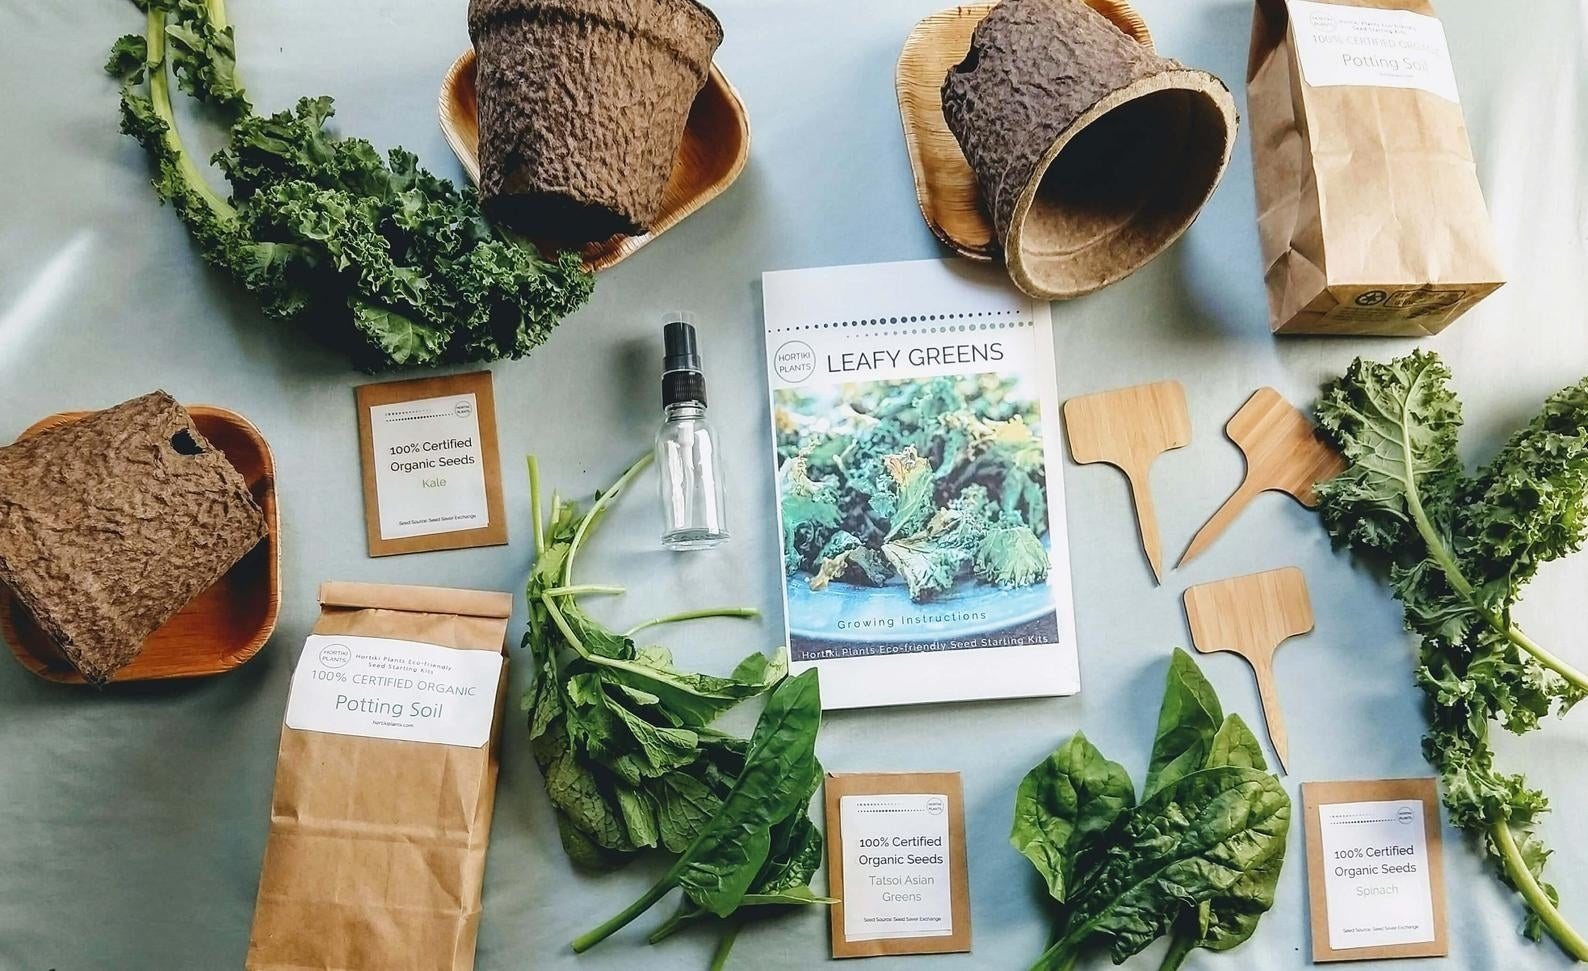 """An instruction packet that reads """"Leafy Greens"""" surrounded by a collection of pots, trays, soil, and seed packets"""